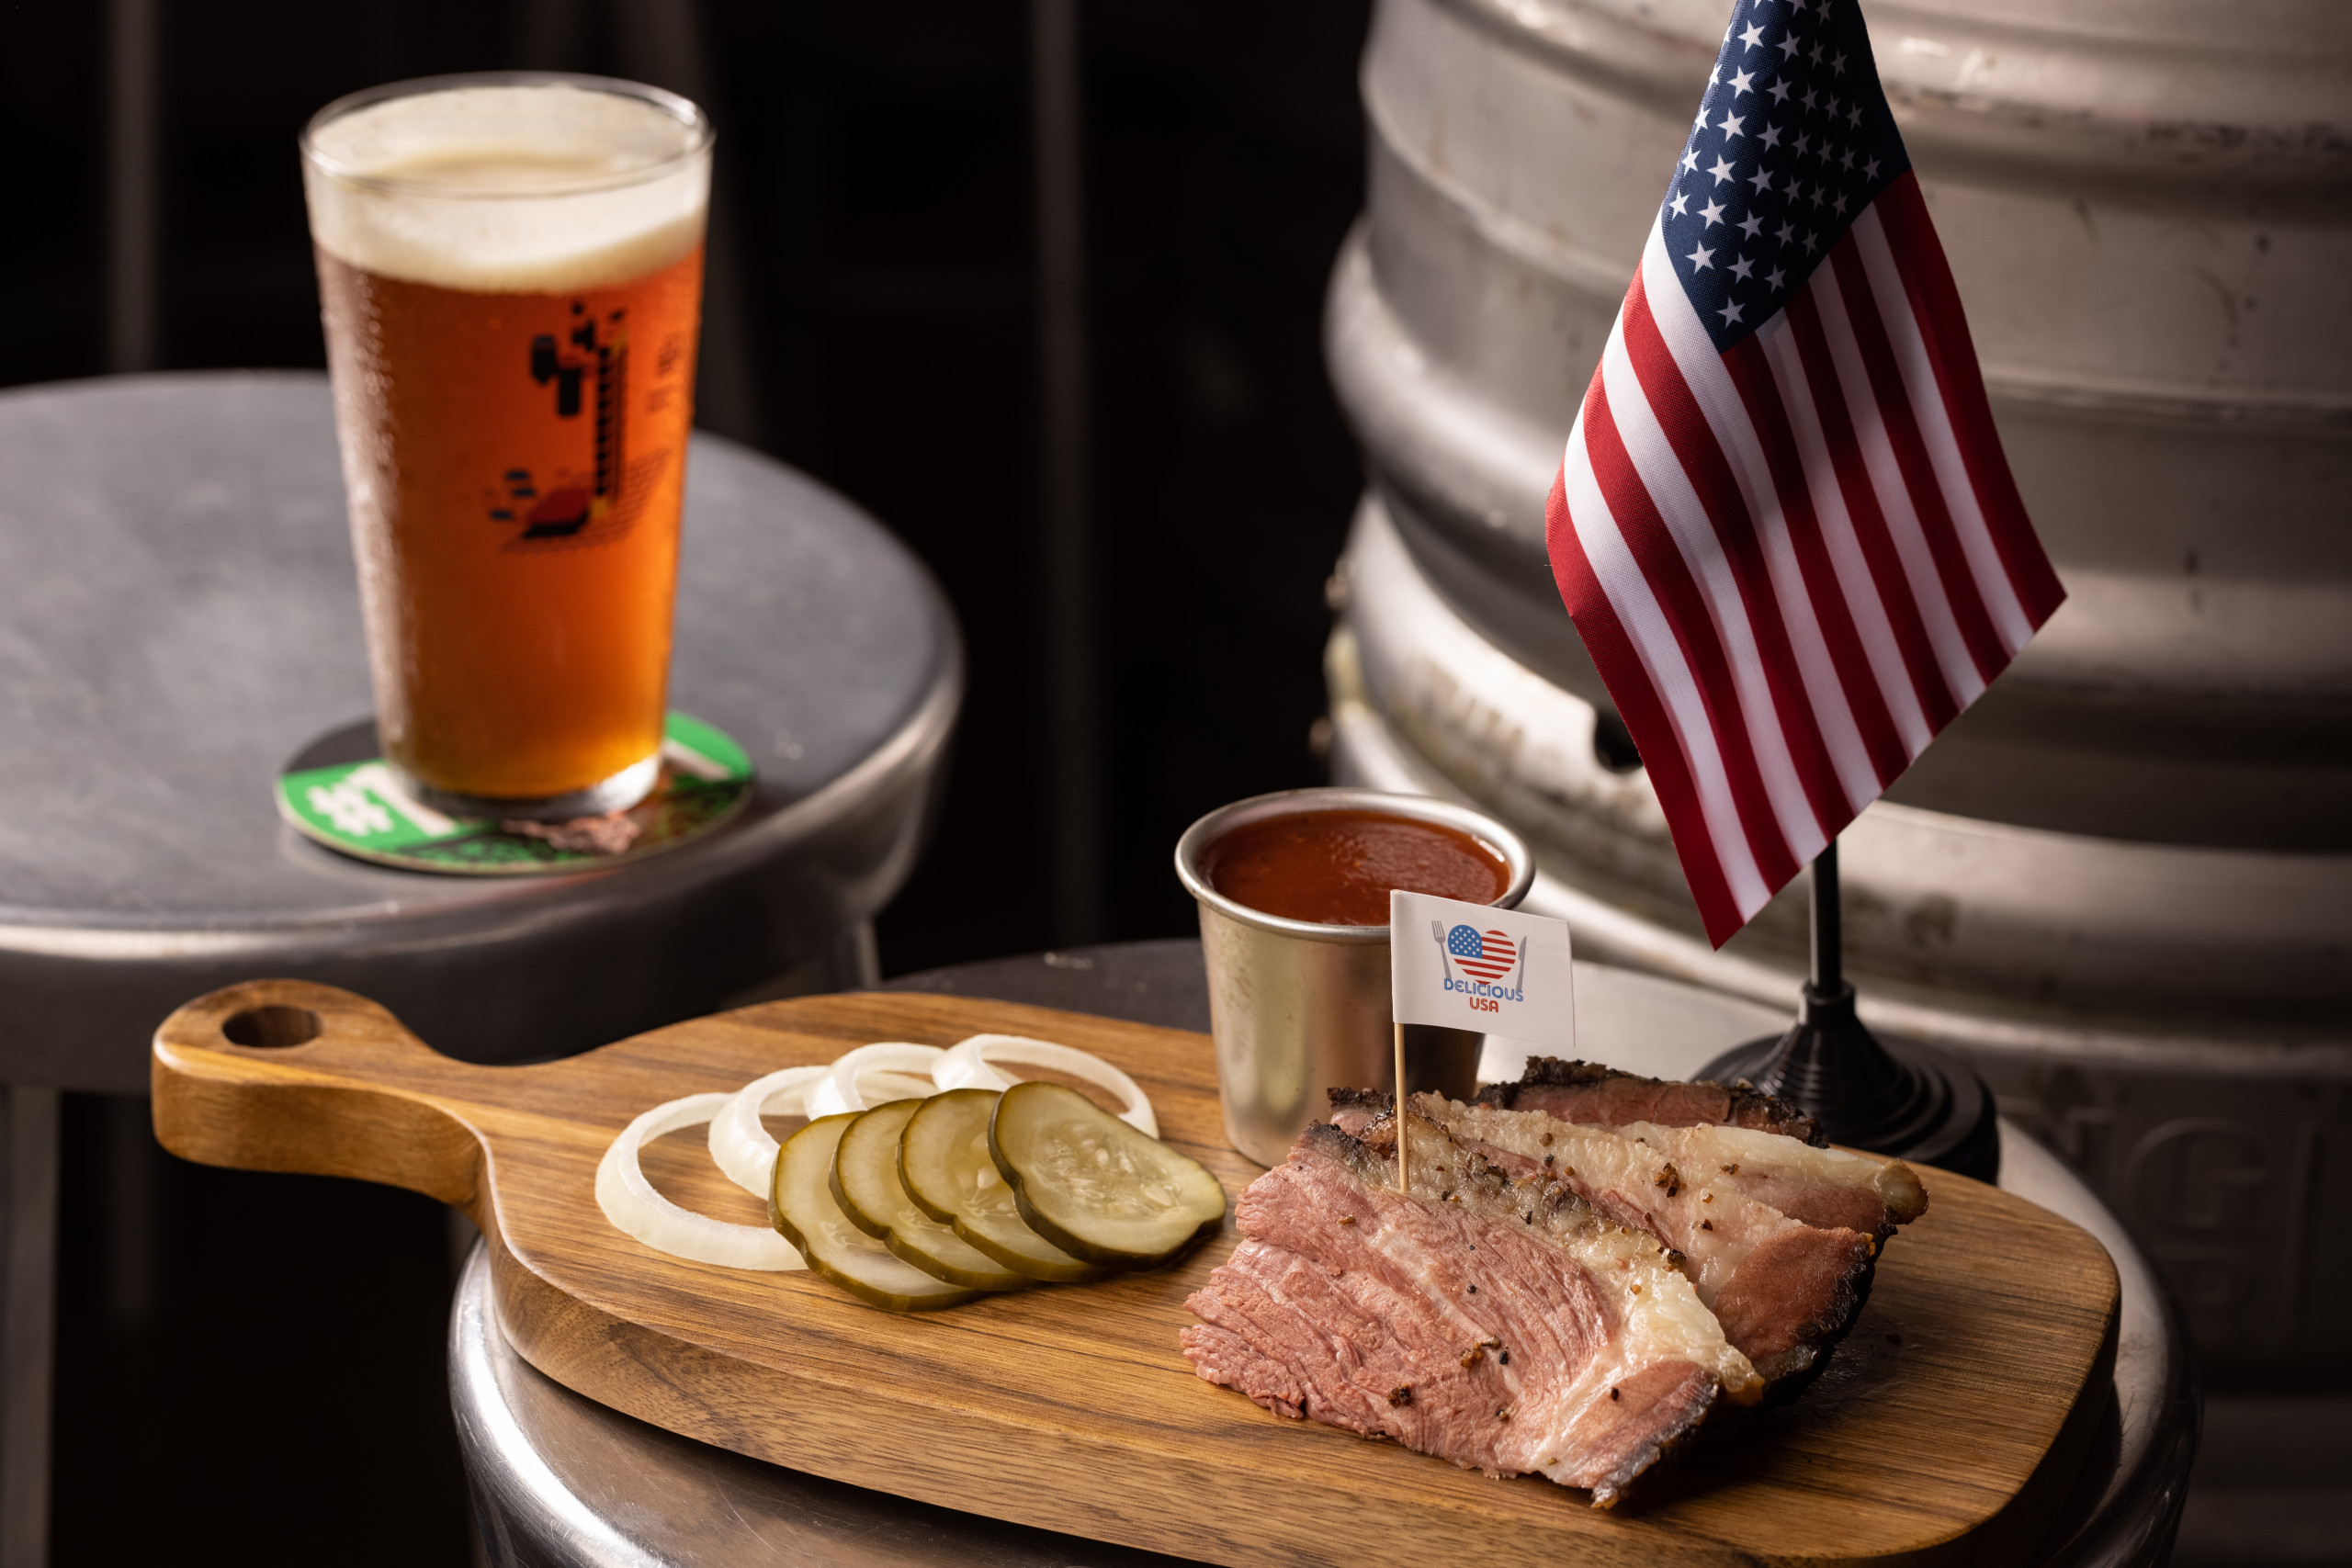 The Roundhouse Taproom x Delicious USA